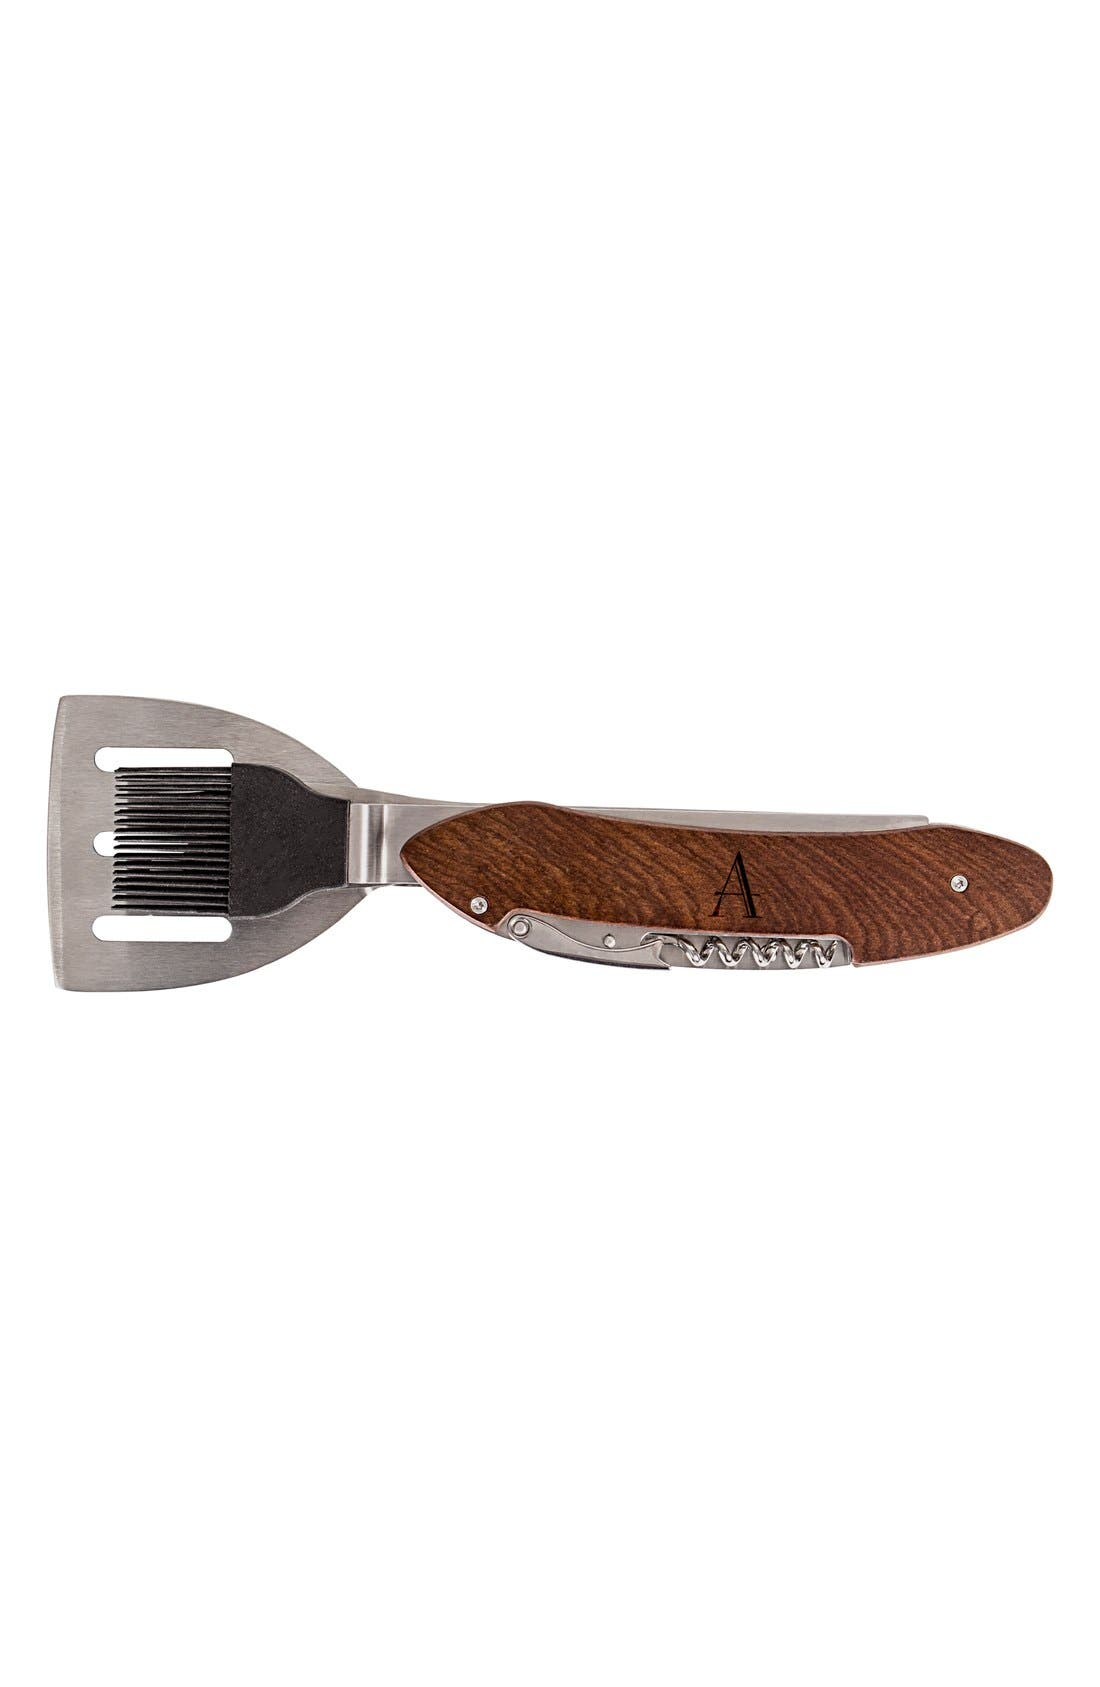 Cathy's Concepts Monogram 5-in-1 Grill Tool